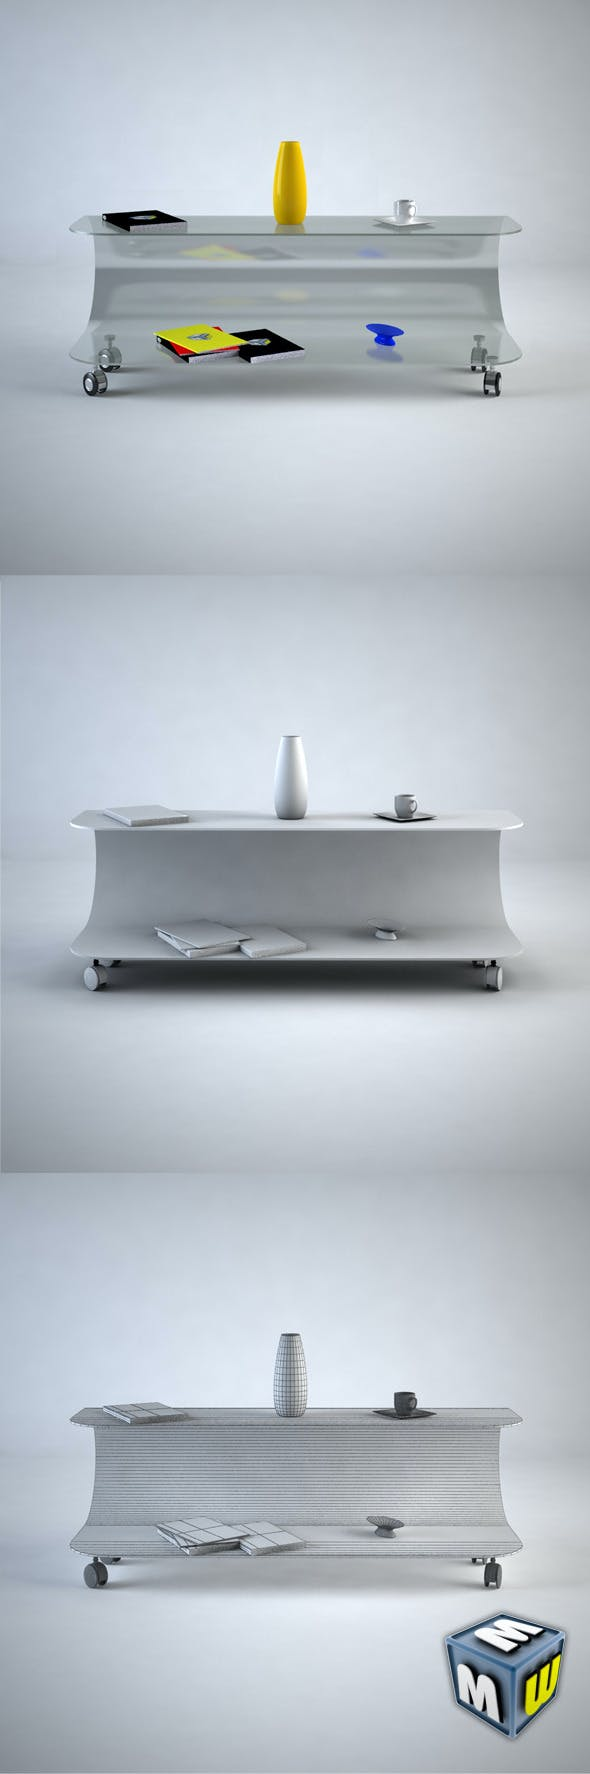 Coffee Table 2 MAX 2011 - 3DOcean Item for Sale